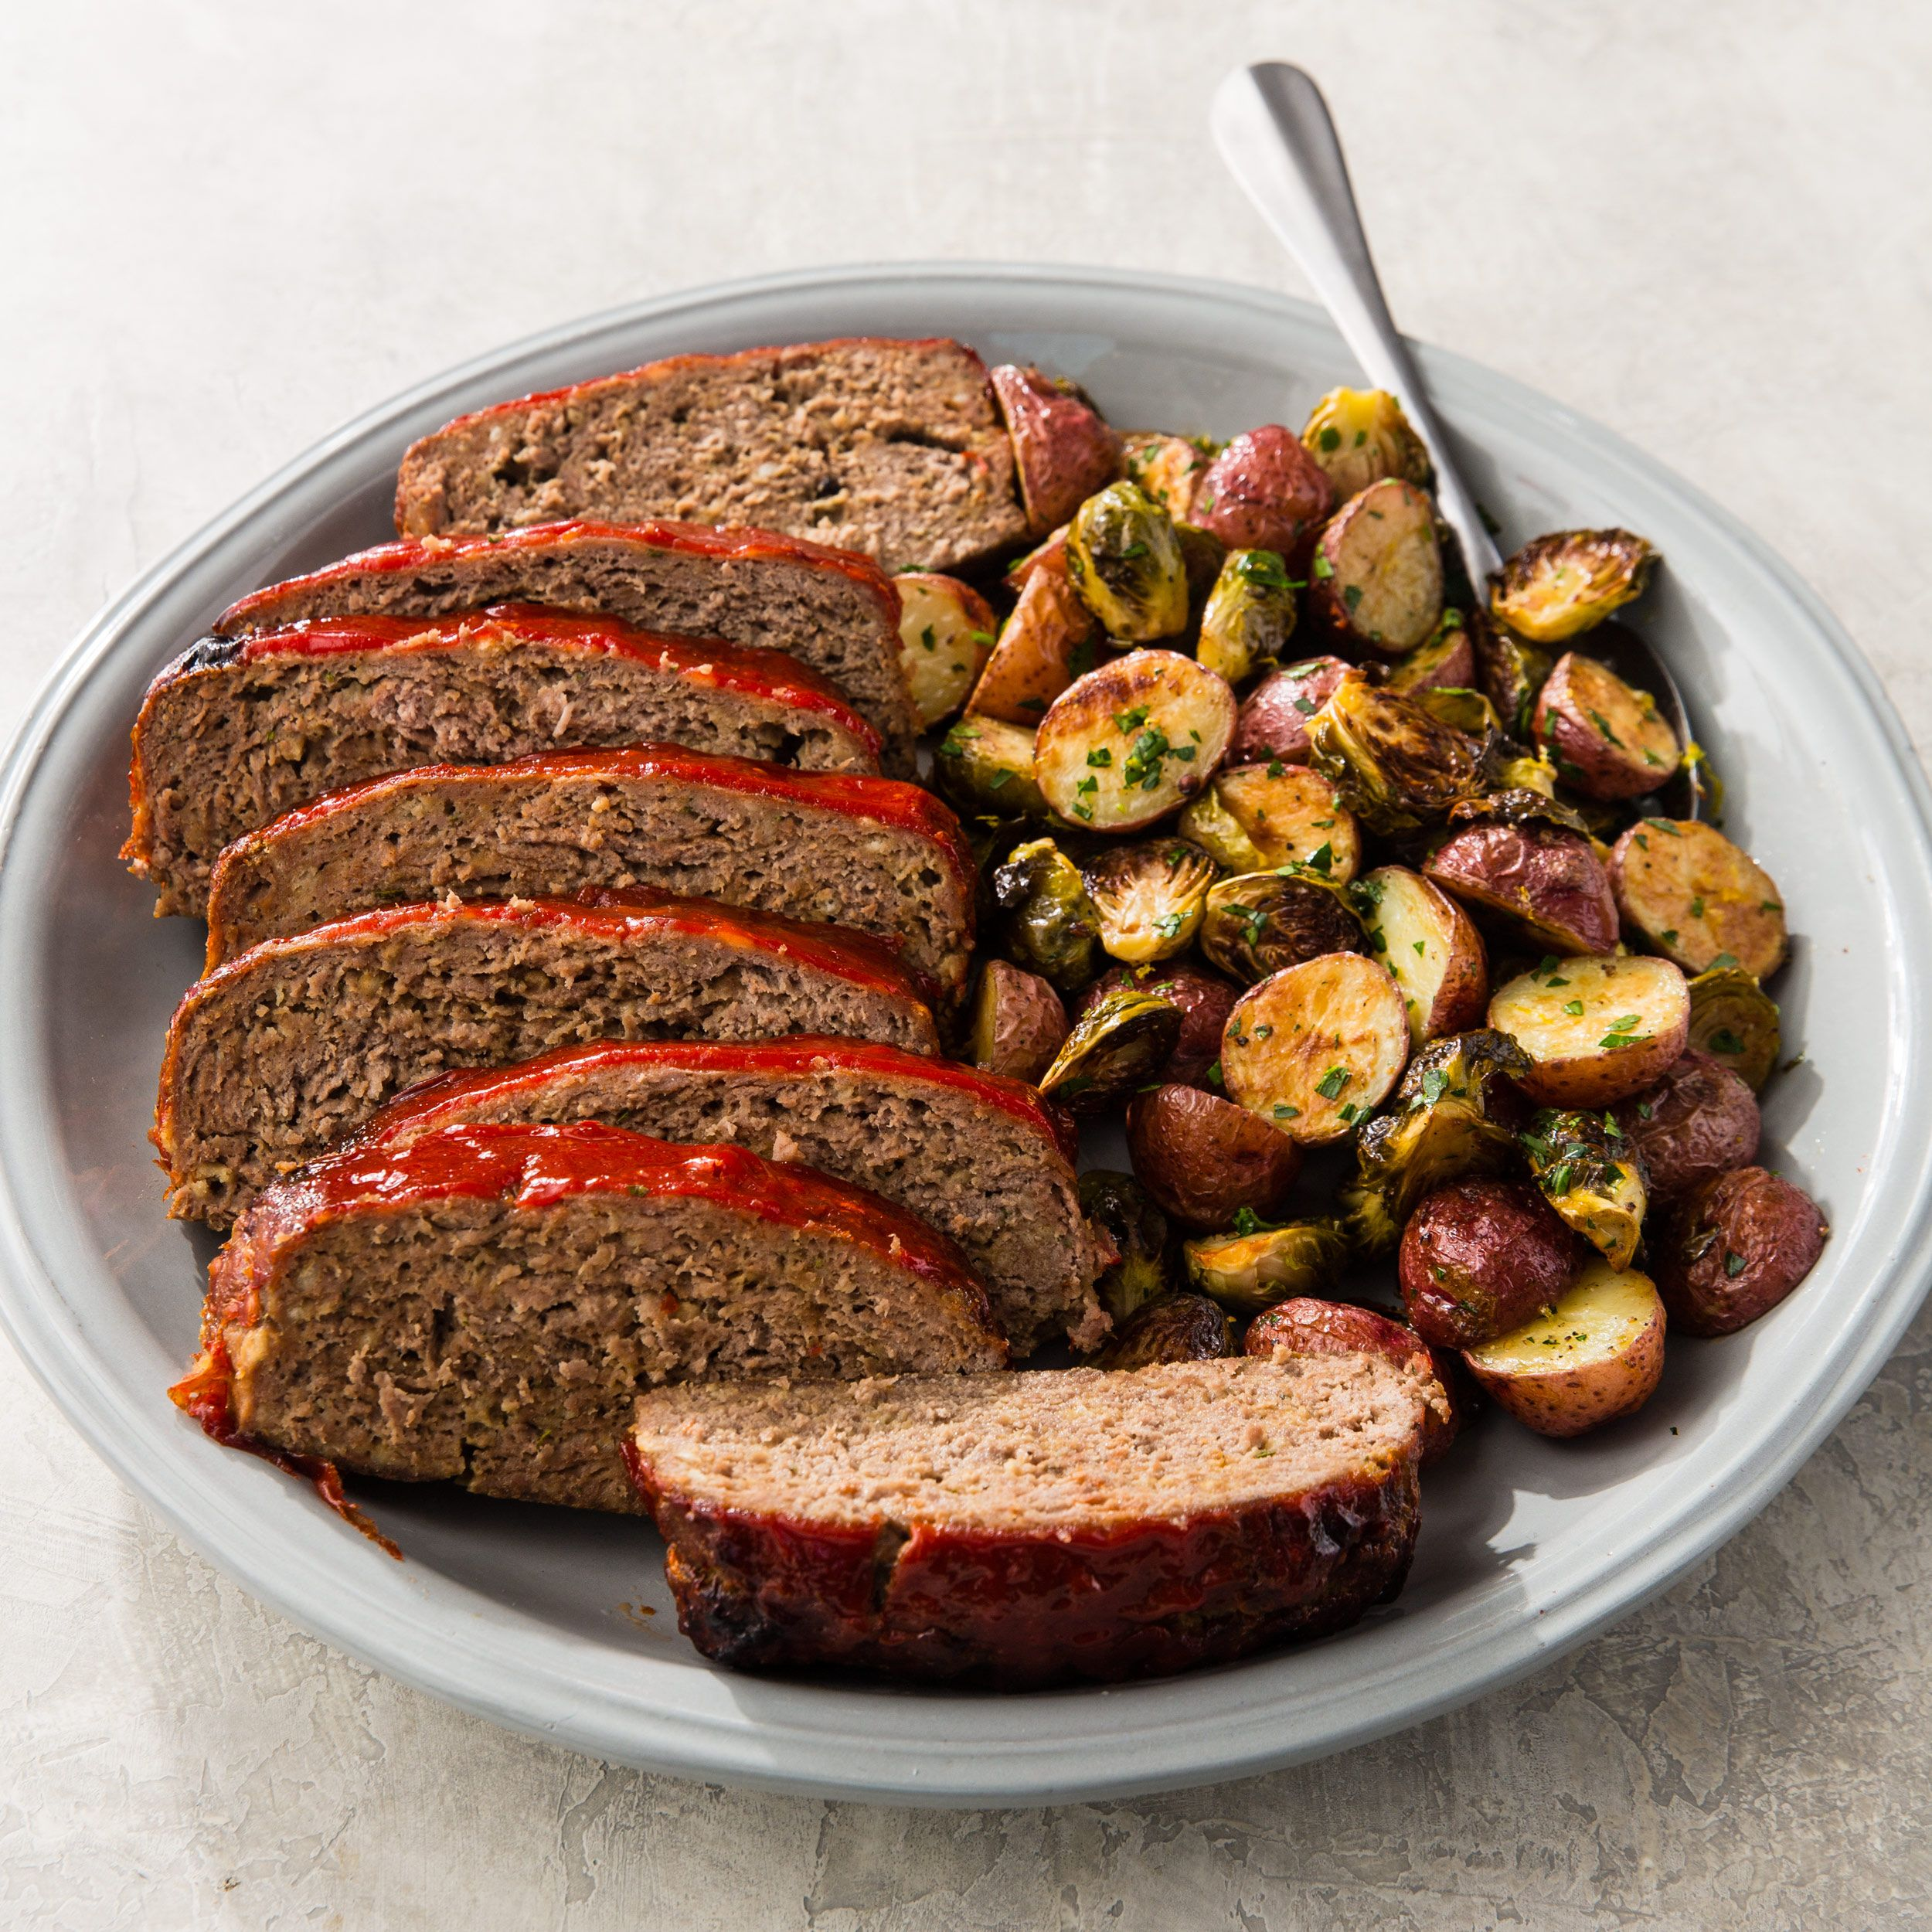 One Pan Meatloaf With Potatoes And Brussels Sprouts Cook S Country Recipe Meatloaf Recipes Classic Meatloaf Entree Recipes